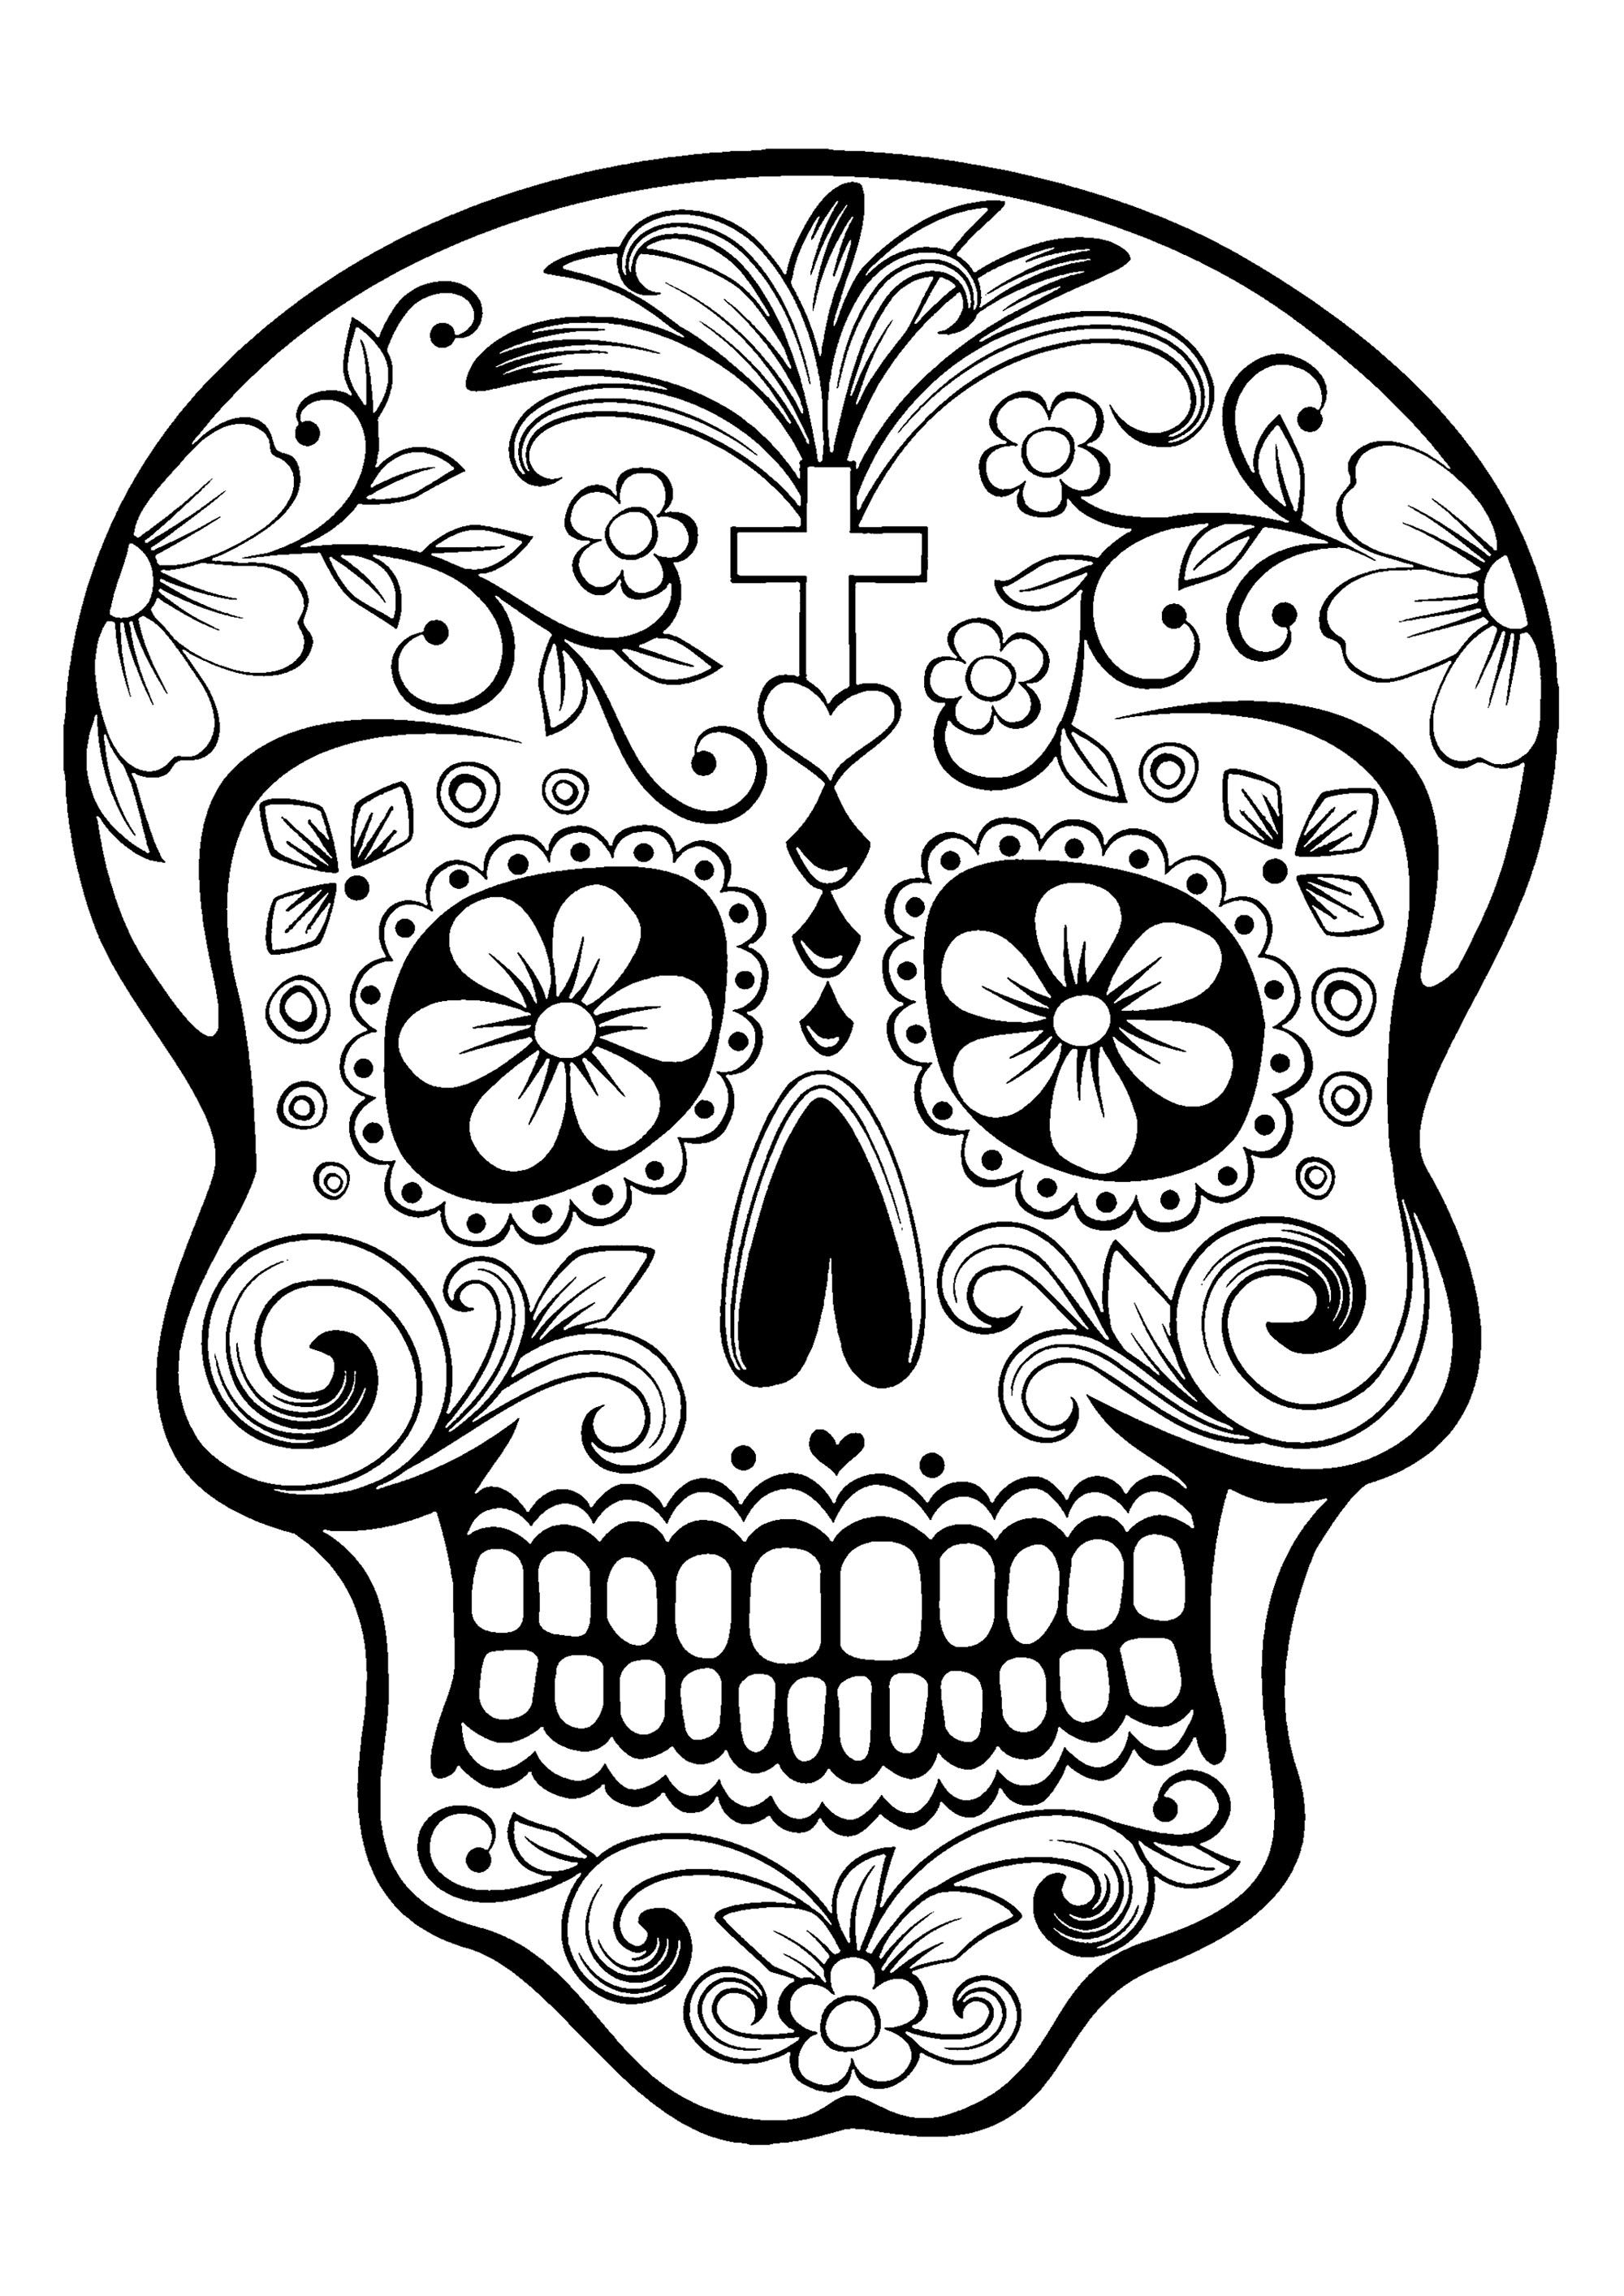 - El Dia De Los Muertos 1 - El Dia De Los Muertos Coloring Pages For